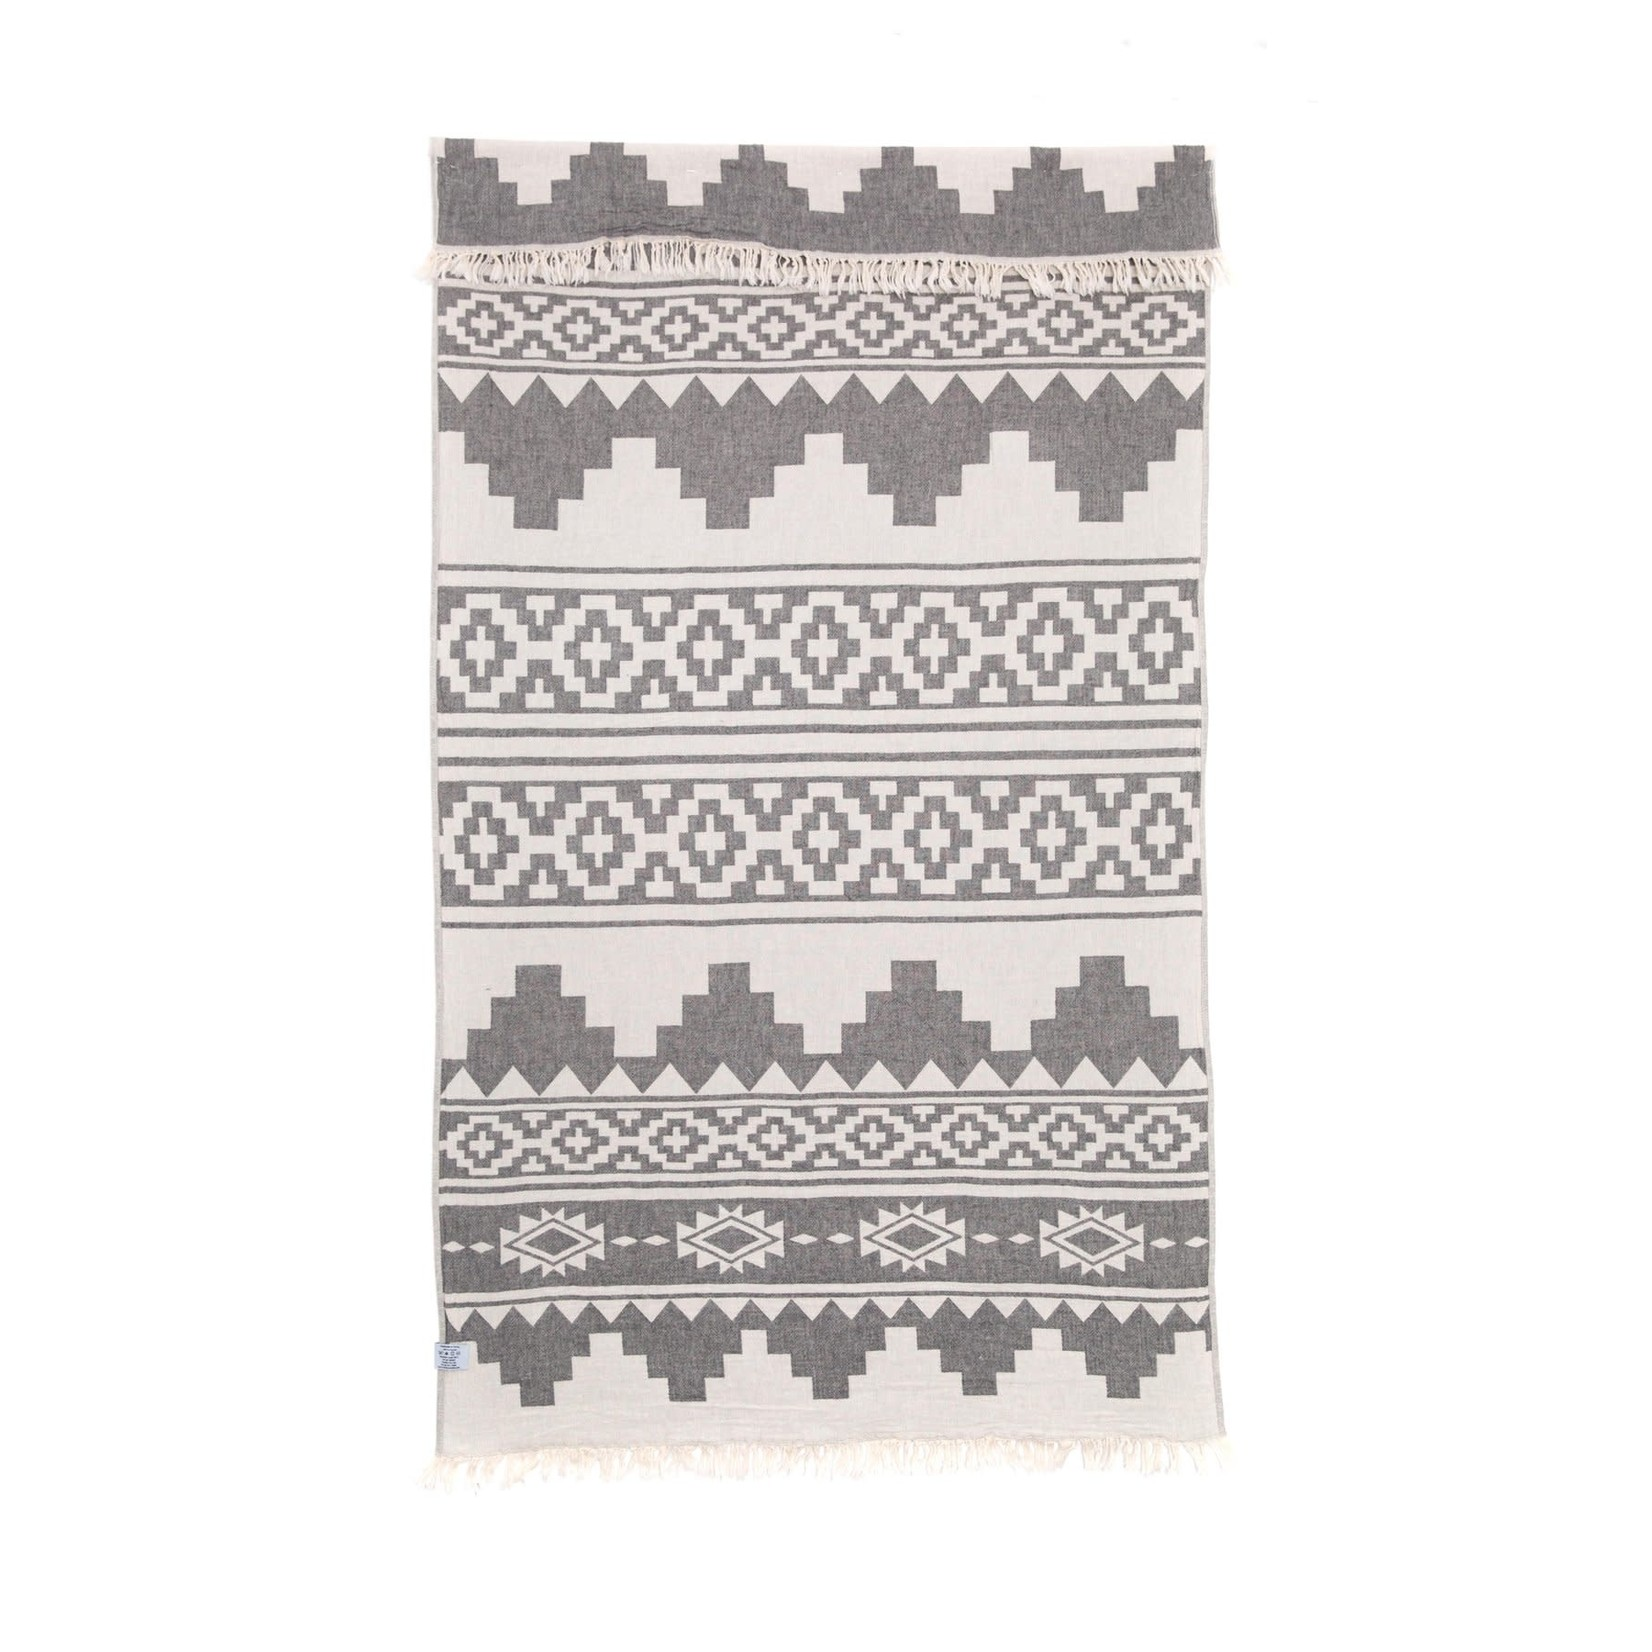 TOFINO TOWEL THE BEACHCOMBER TOWEL